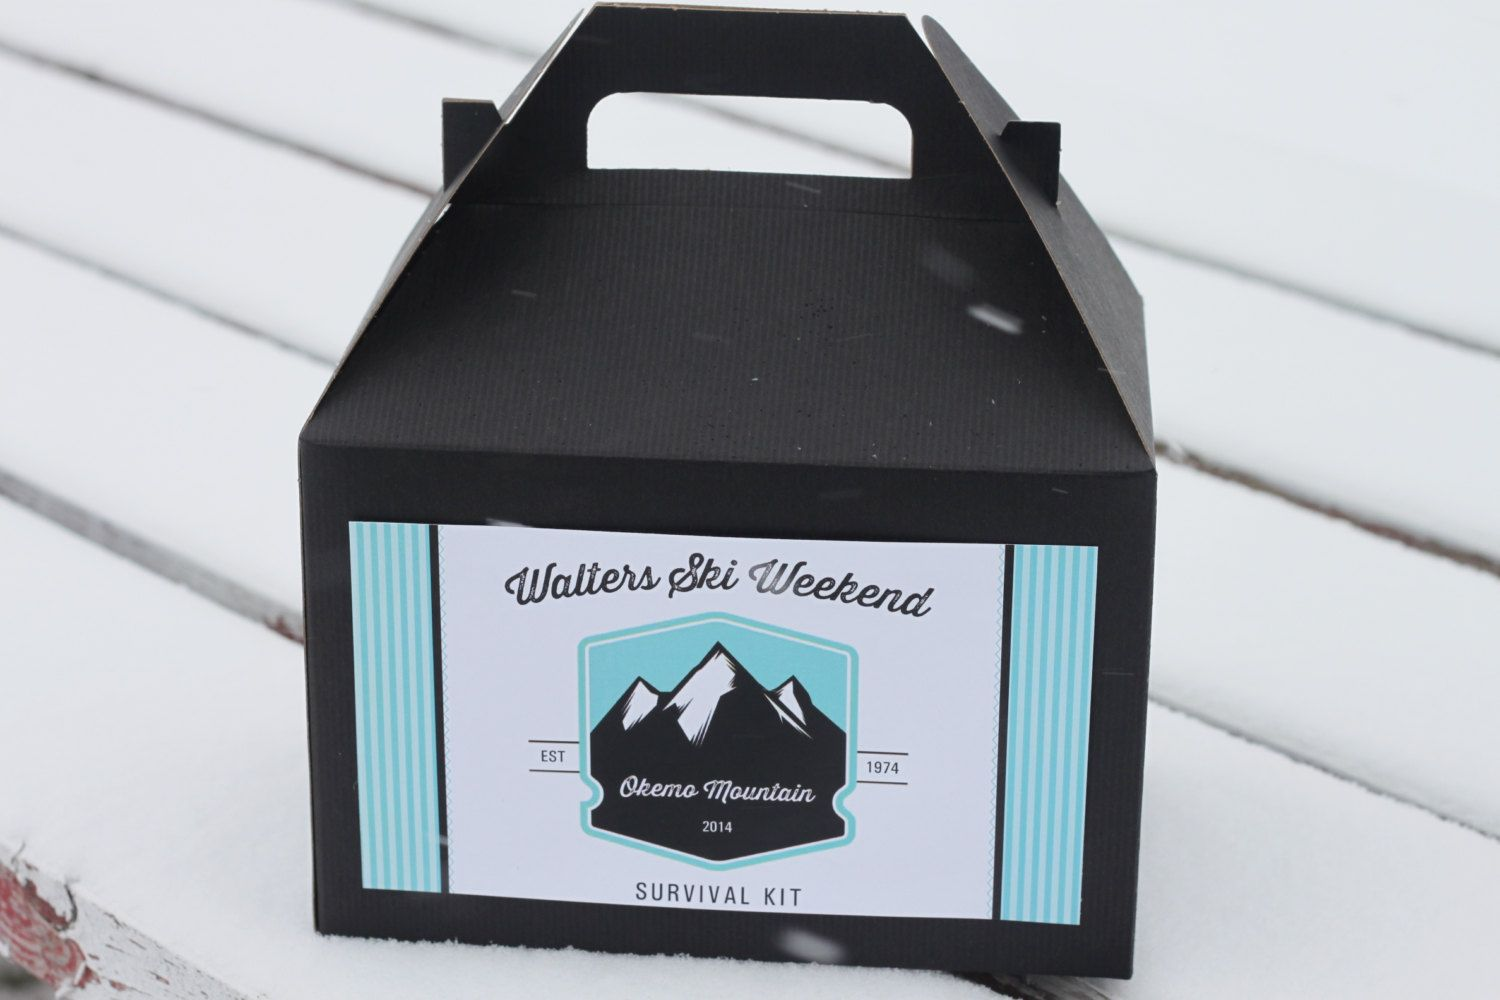 Set 10 Hotel Welcome Box Ski Weekend Survival Kit 30th 40th